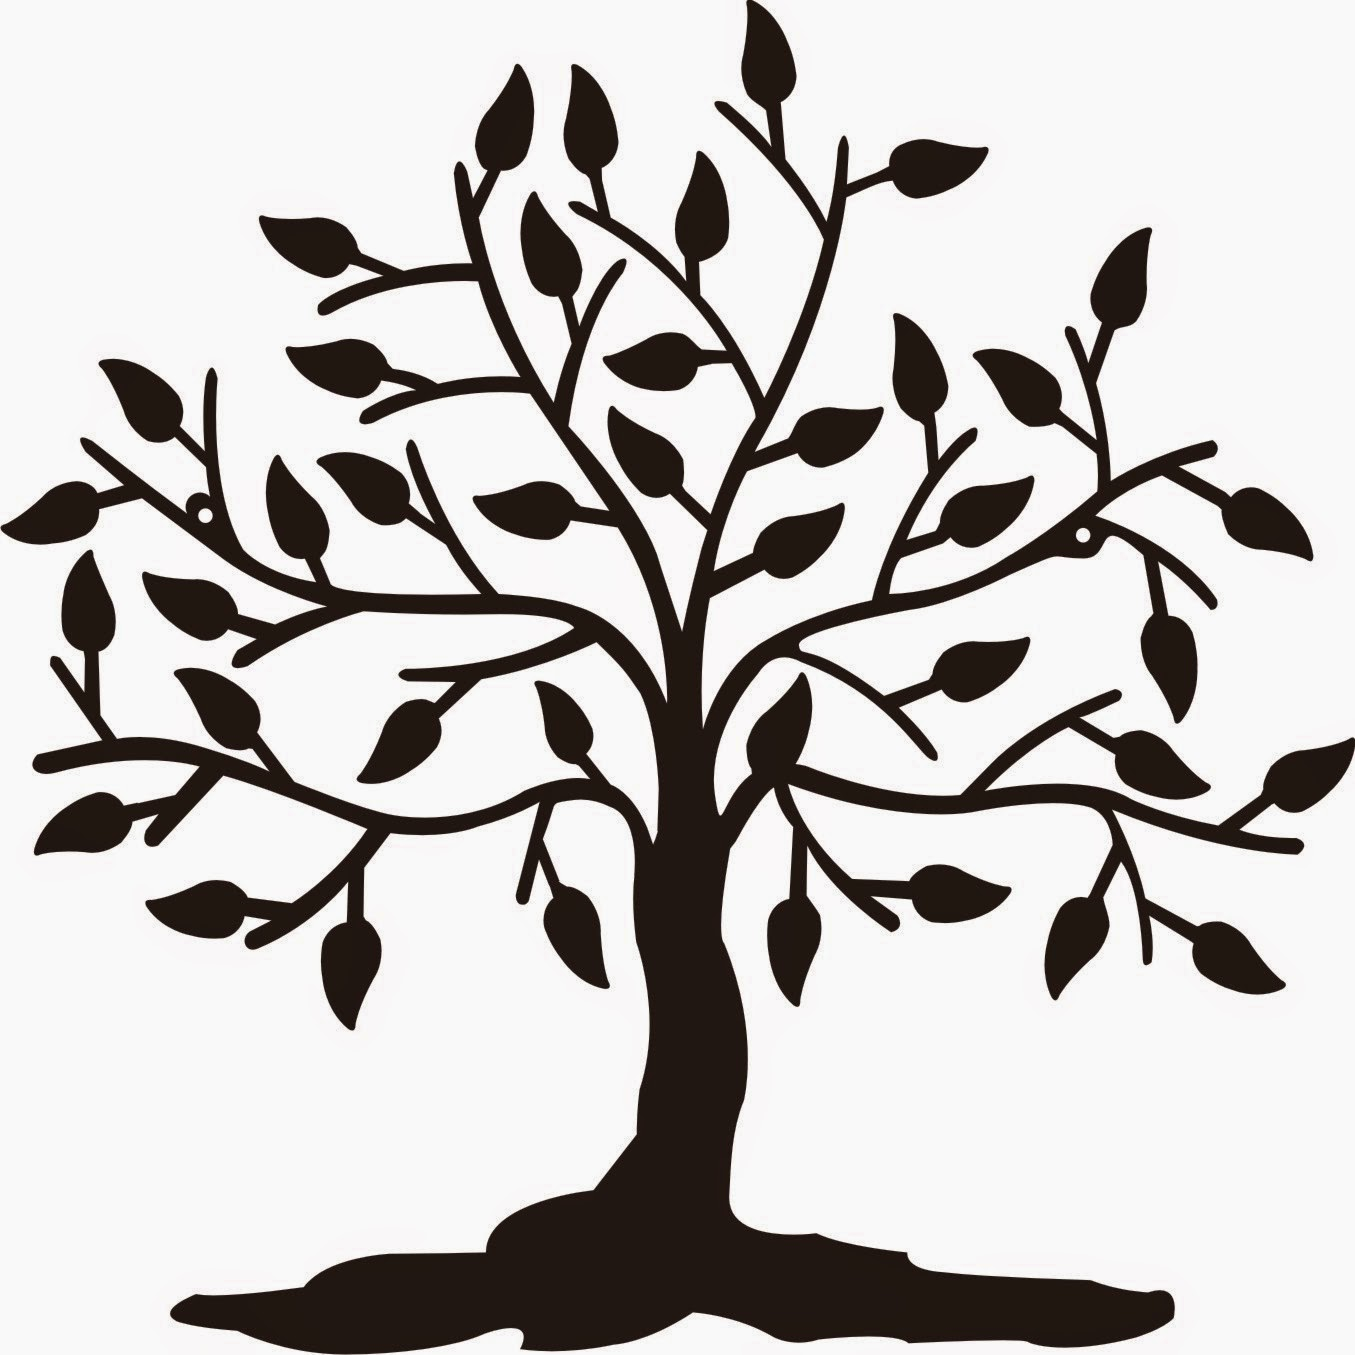 tree of life clipart clipart suggest free black and white clipart pine tree free christmas tree clipart black and white